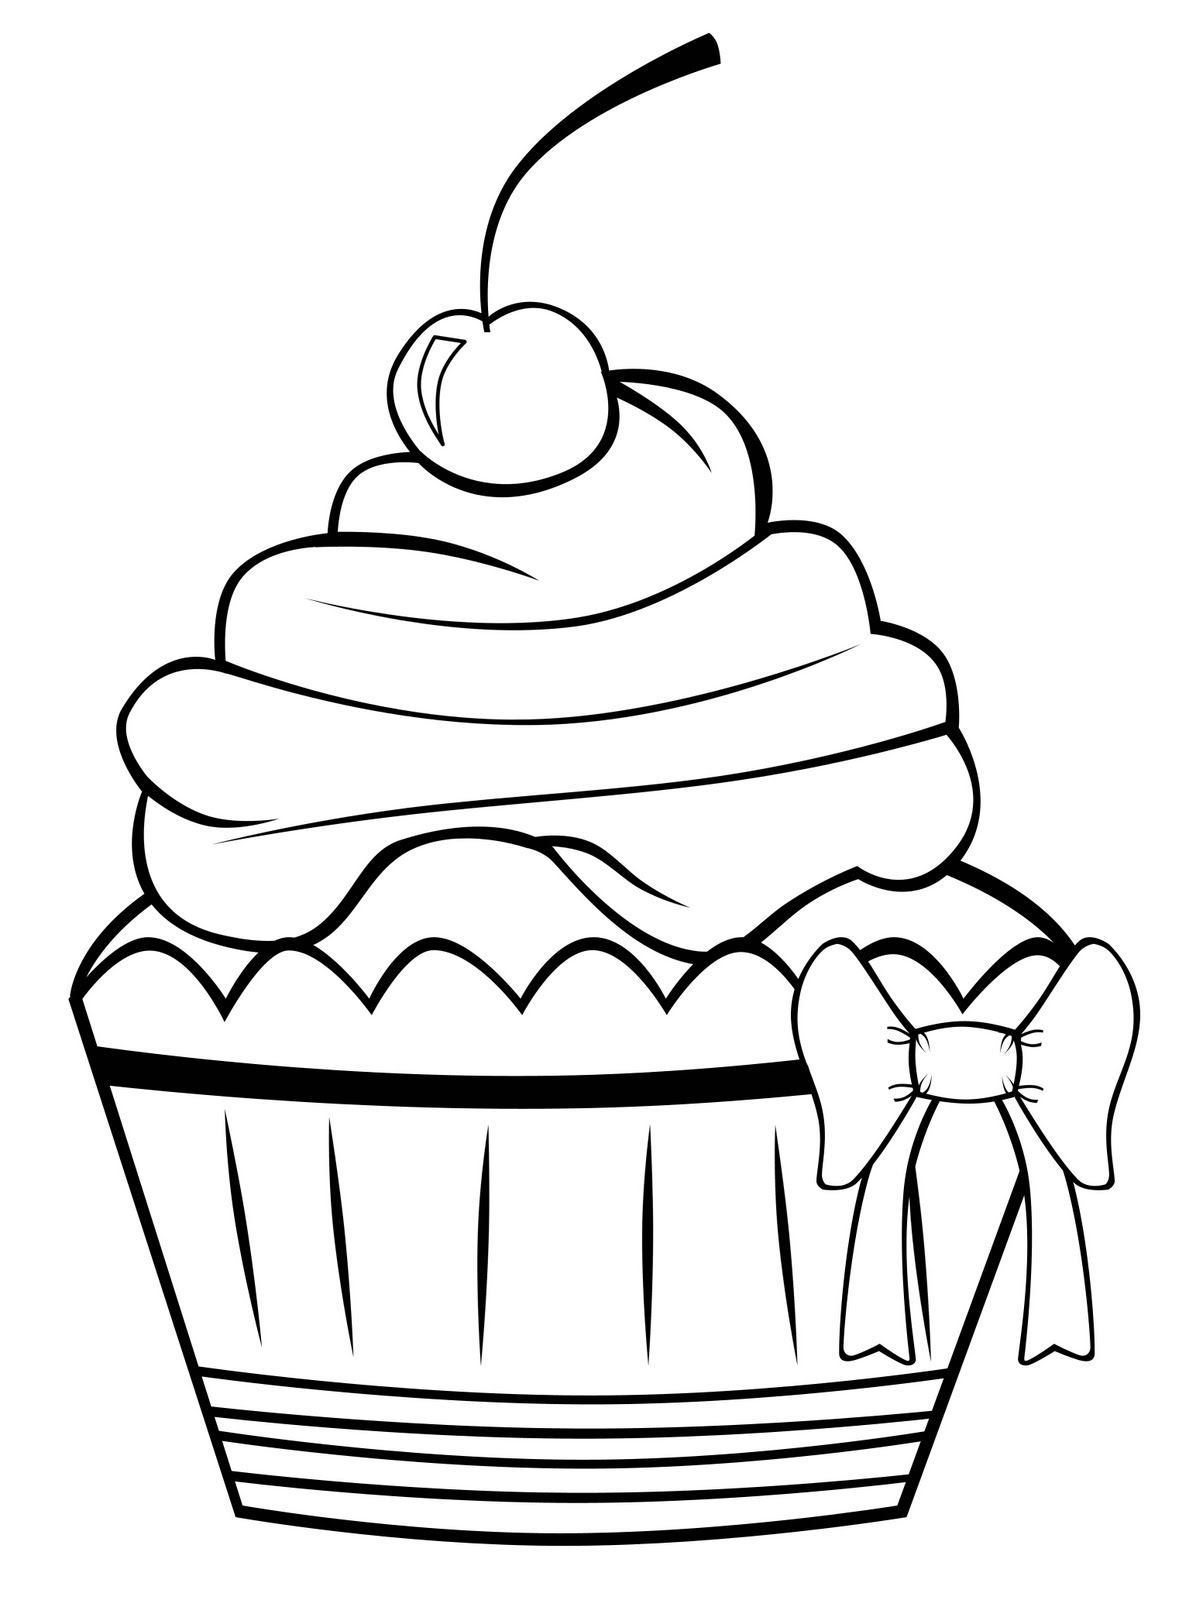 Cupcakes Coloring Pages | värityskuvat | Pinterest | White cupcakes ...